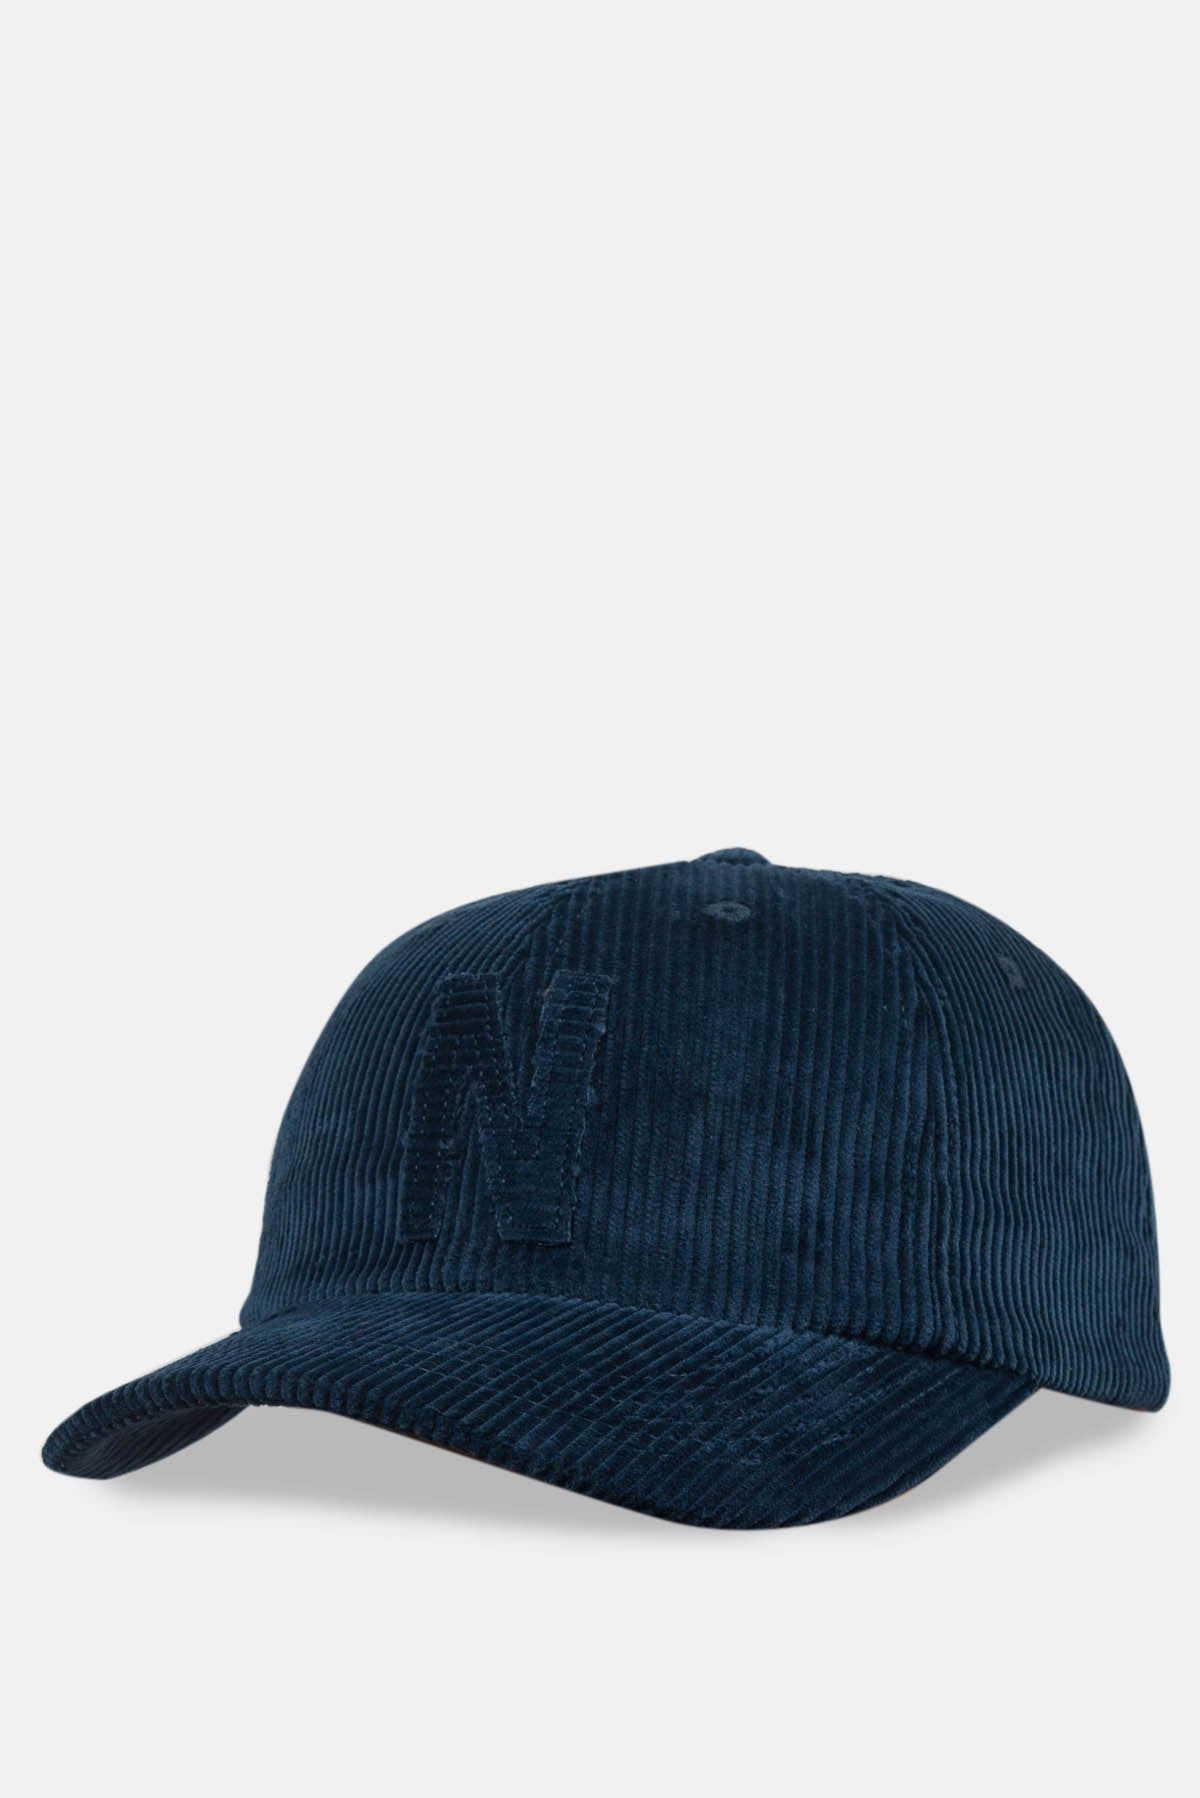 Norse Projects 6 Panel Corduroy Cap available from Priory d0690d8ae74